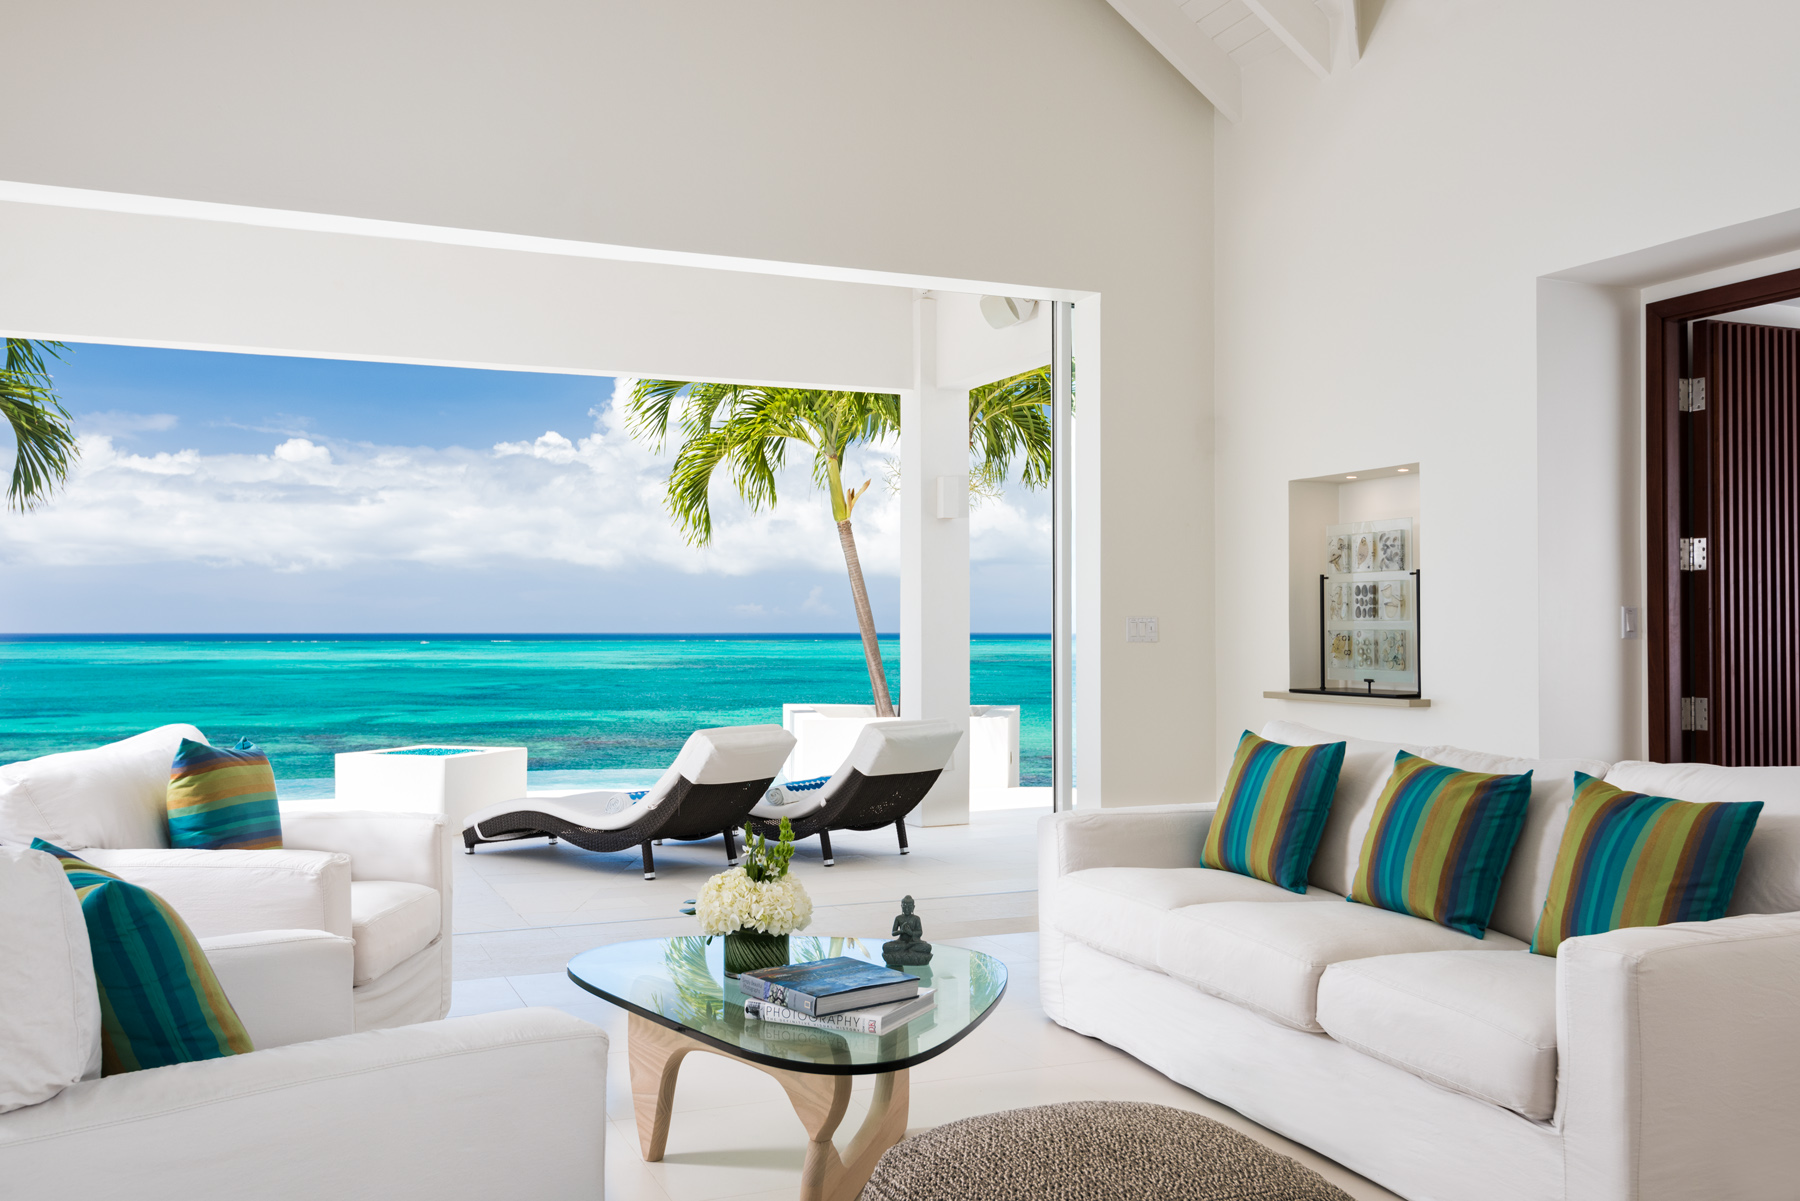 Additional photo for property listing at Villa Lua Beachfront Blue Mountain, Providenciales TC Îles Turques Et Caïques